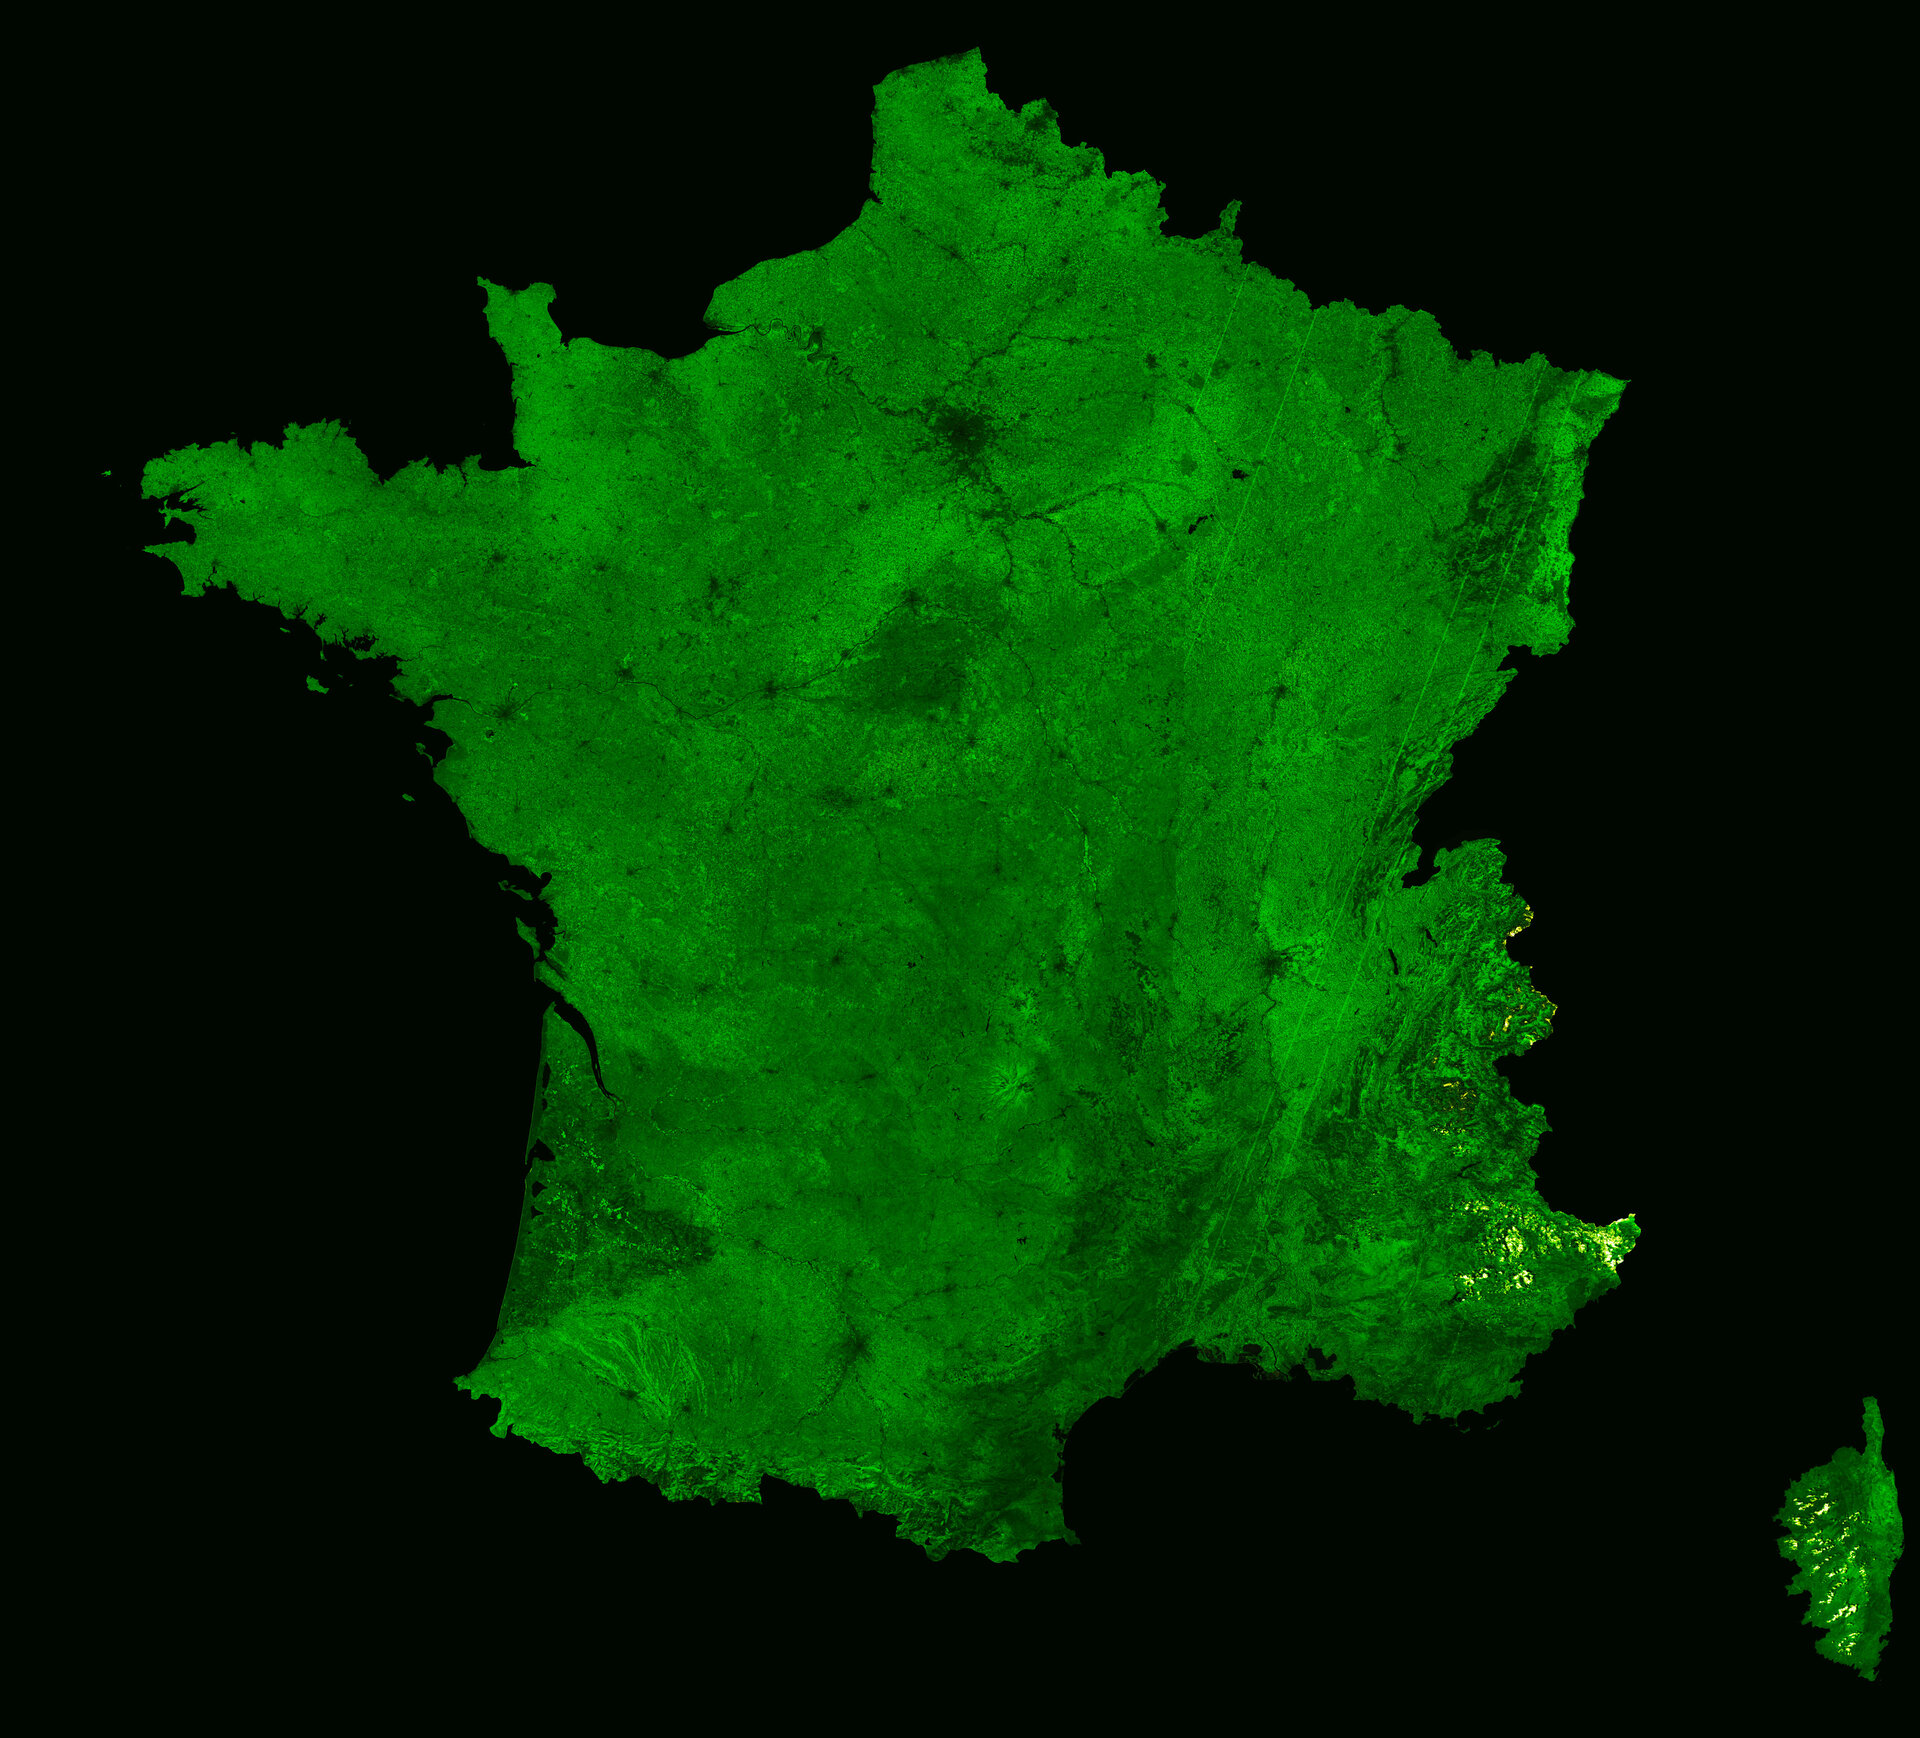 France, as seen by Proba-V, licenced under Creative Commons CC BY-SA 3.0 IGO